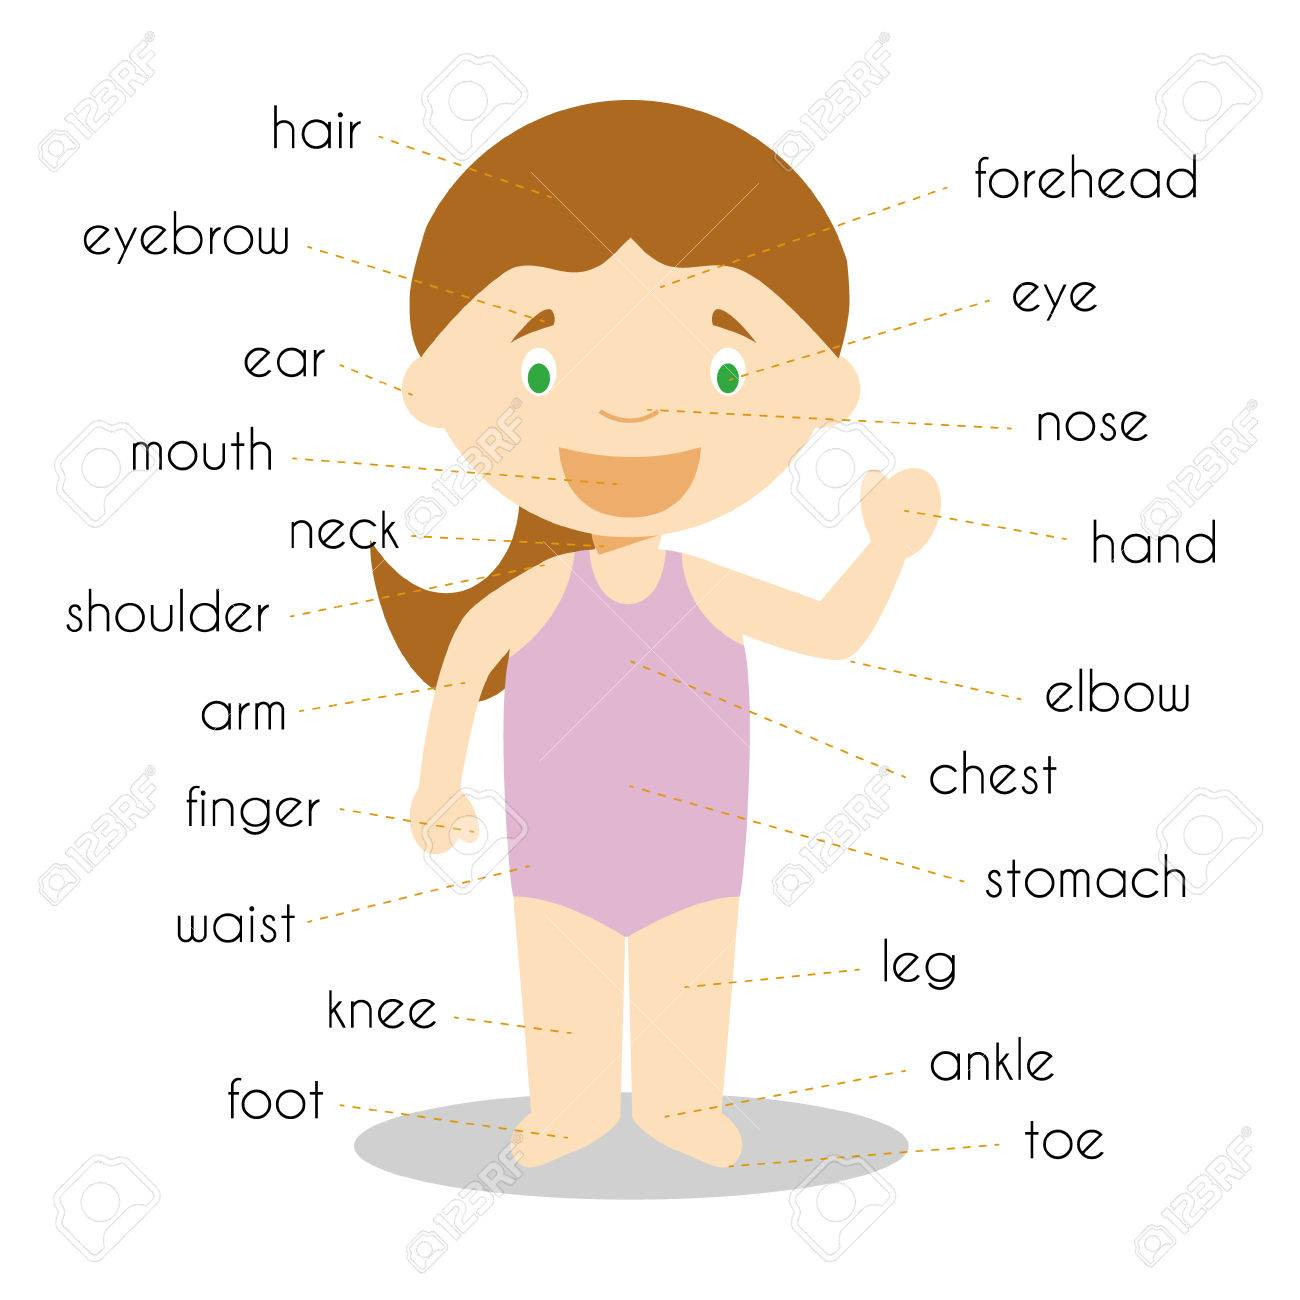 Human Body Parts Vocabulary Vector Illustration Royalty Free.